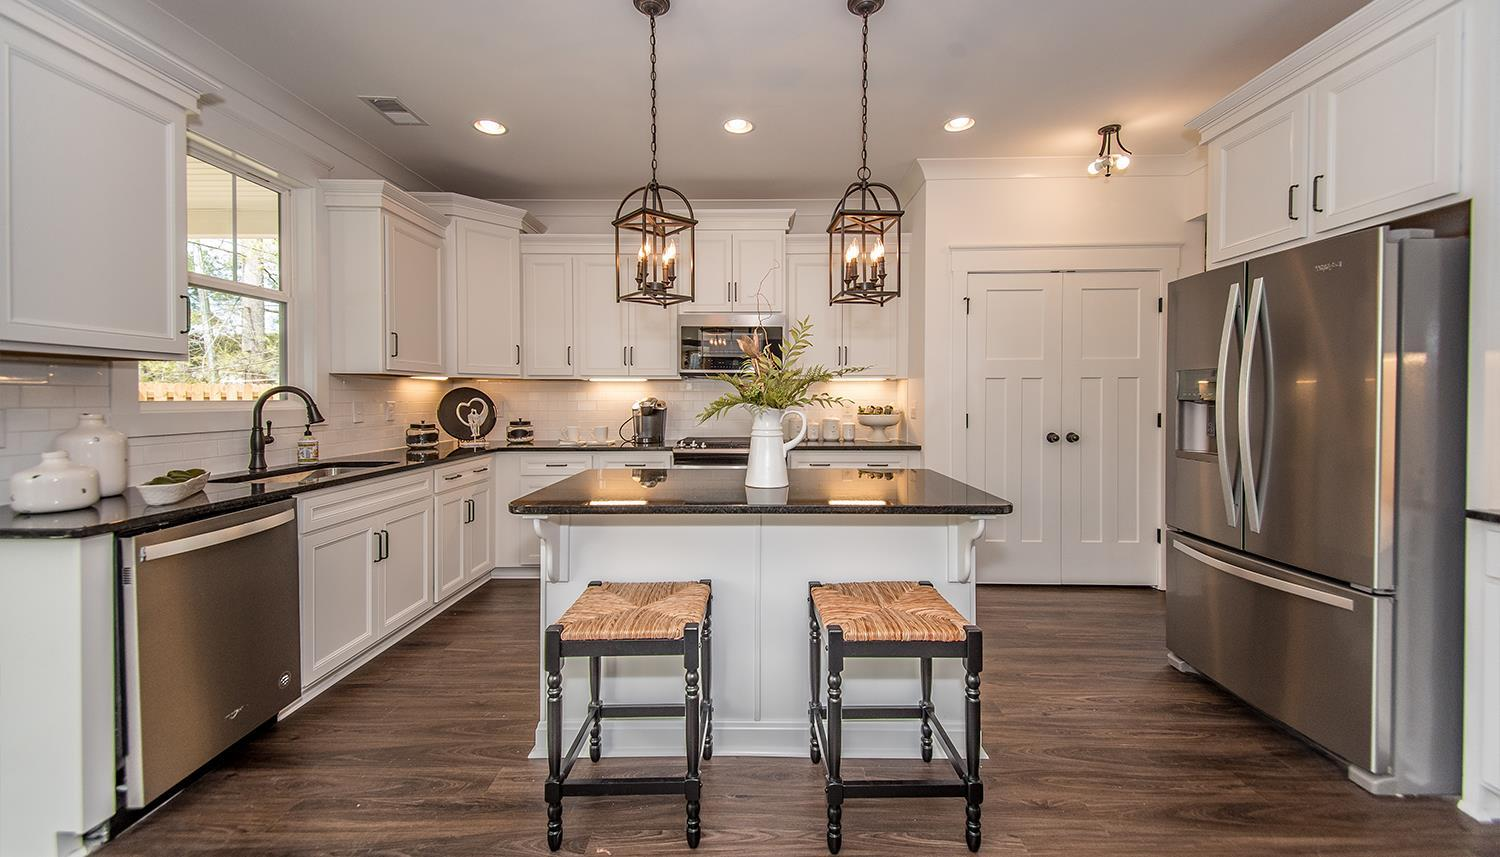 Kitchen featured in the Drayton By Dan Ryan Builders in Greenville-Spartanburg, SC